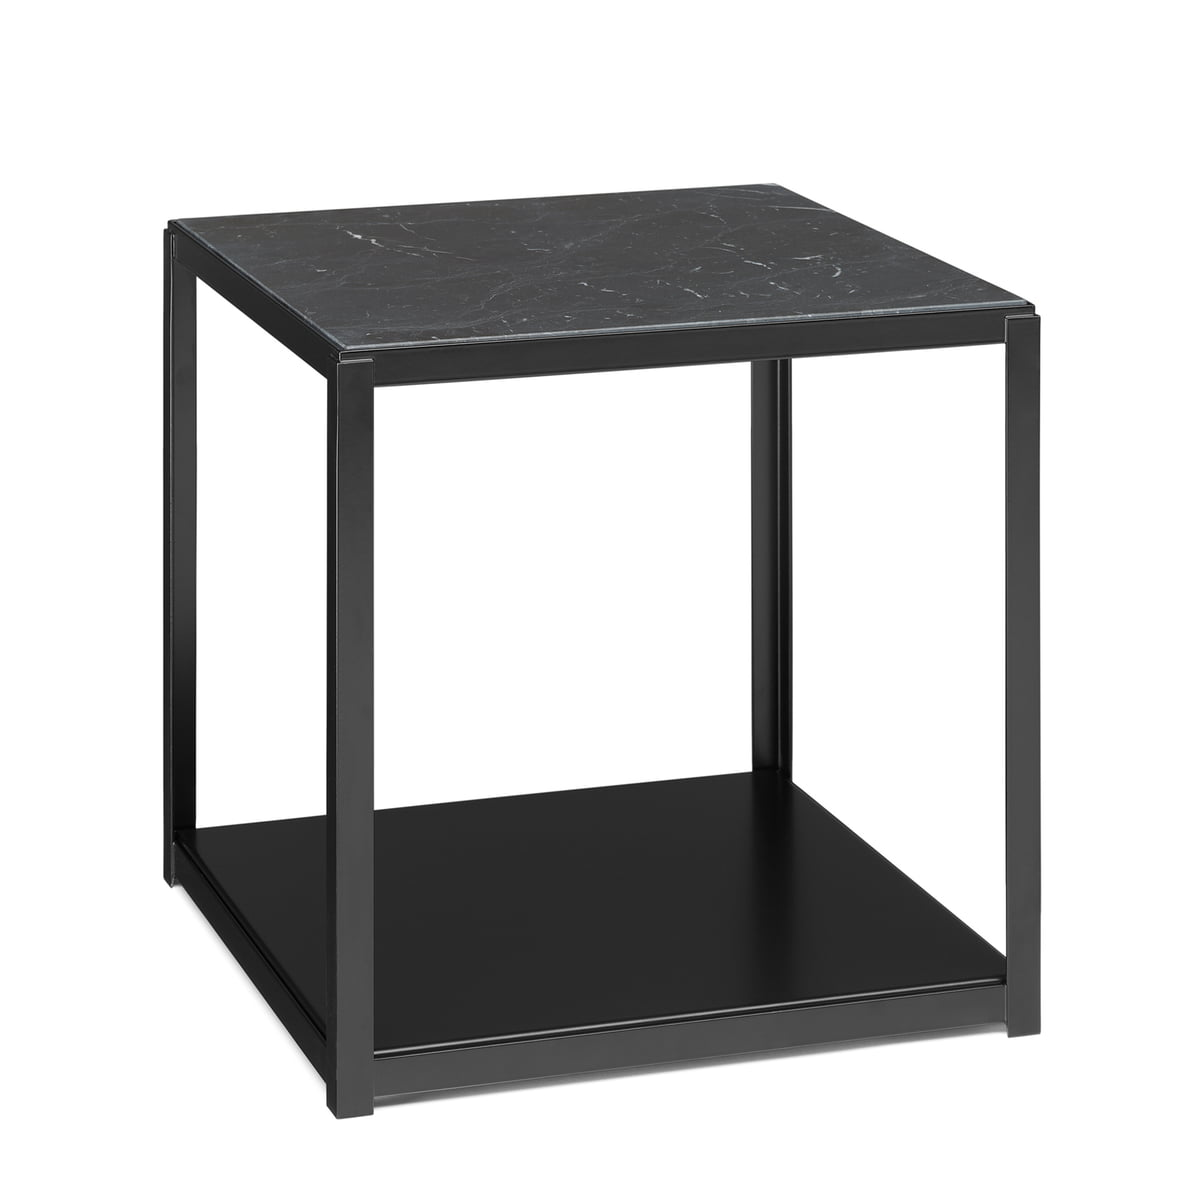 Fortyforty stackable side table by e15 in our shop for Beistelltisch couch